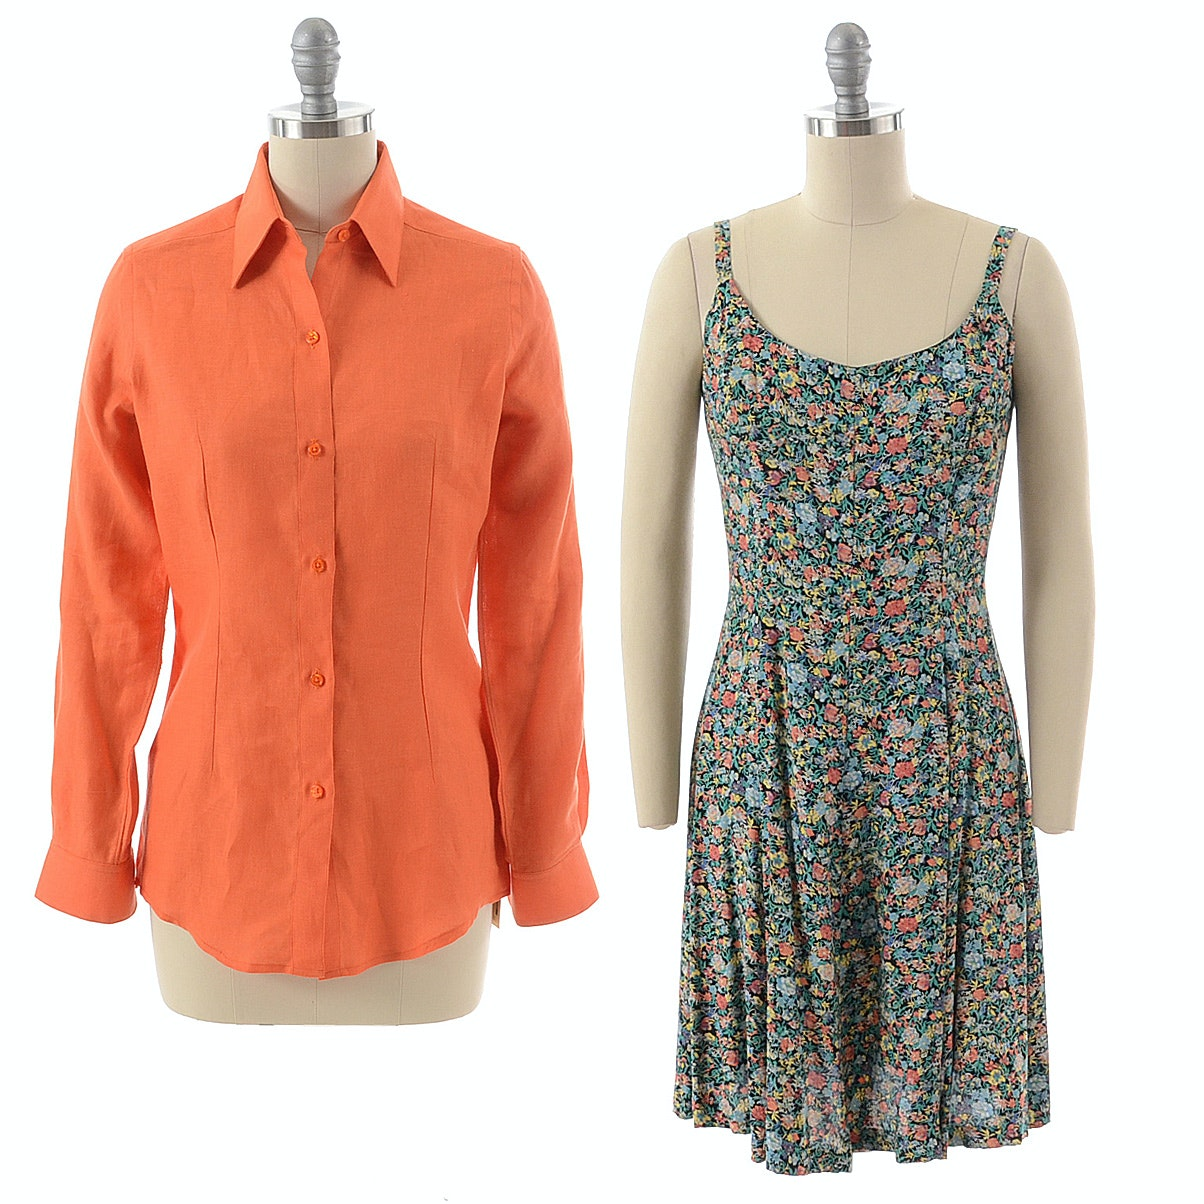 Steven Stolman Shirt and Elizabeth Wayman Dress